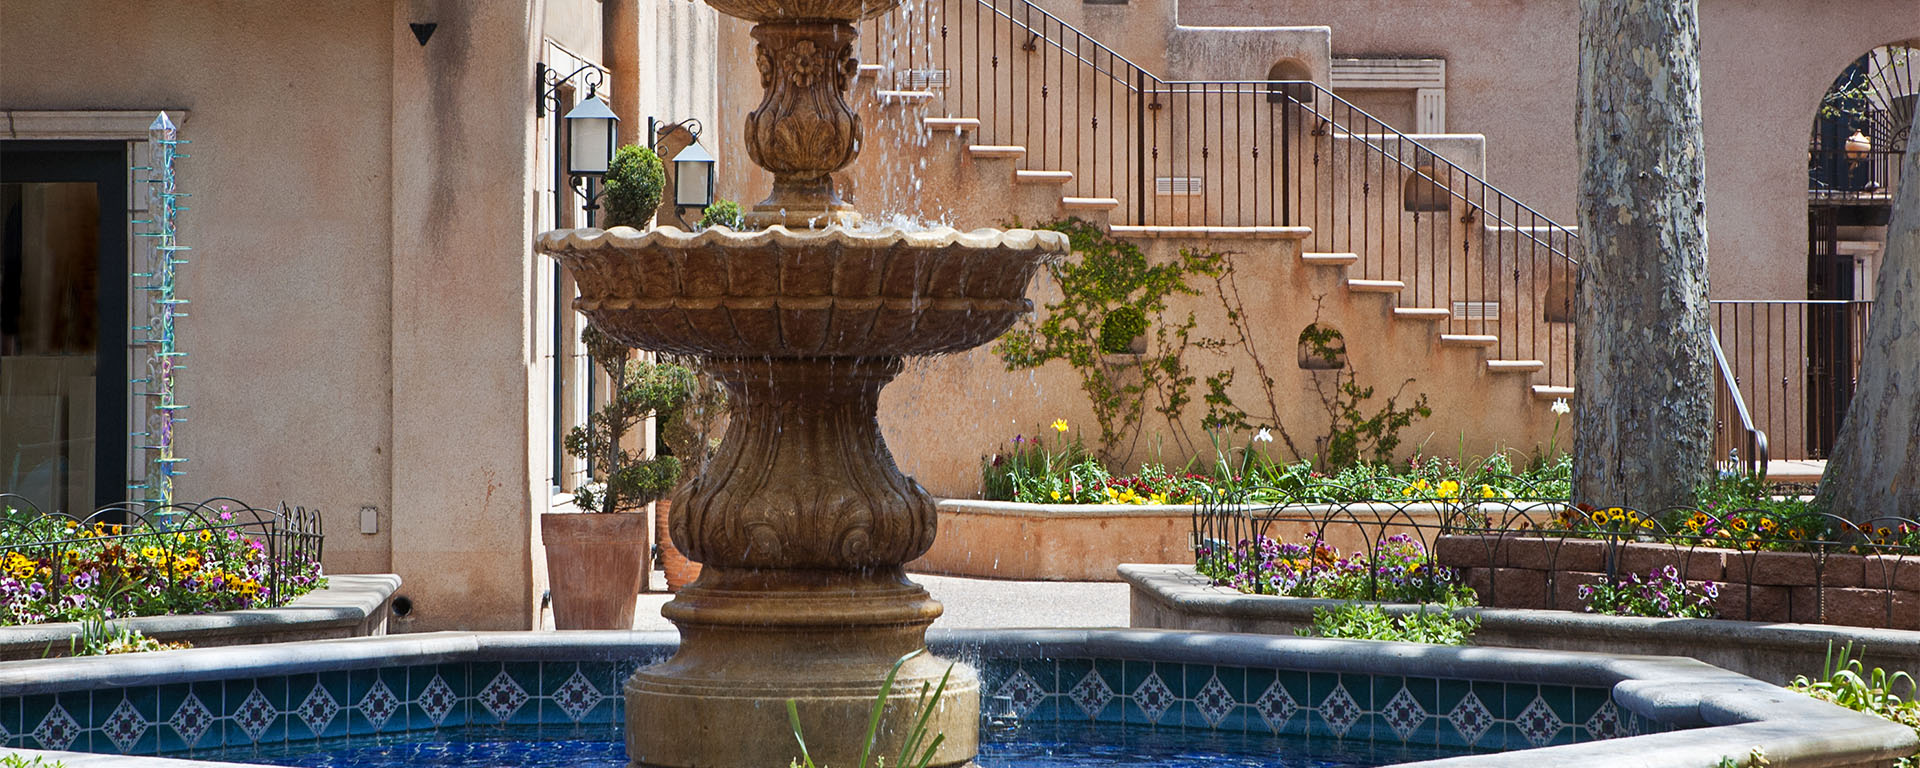 Fountain courtyard at Tlaquepaque artisan village in Sedona, Arizona